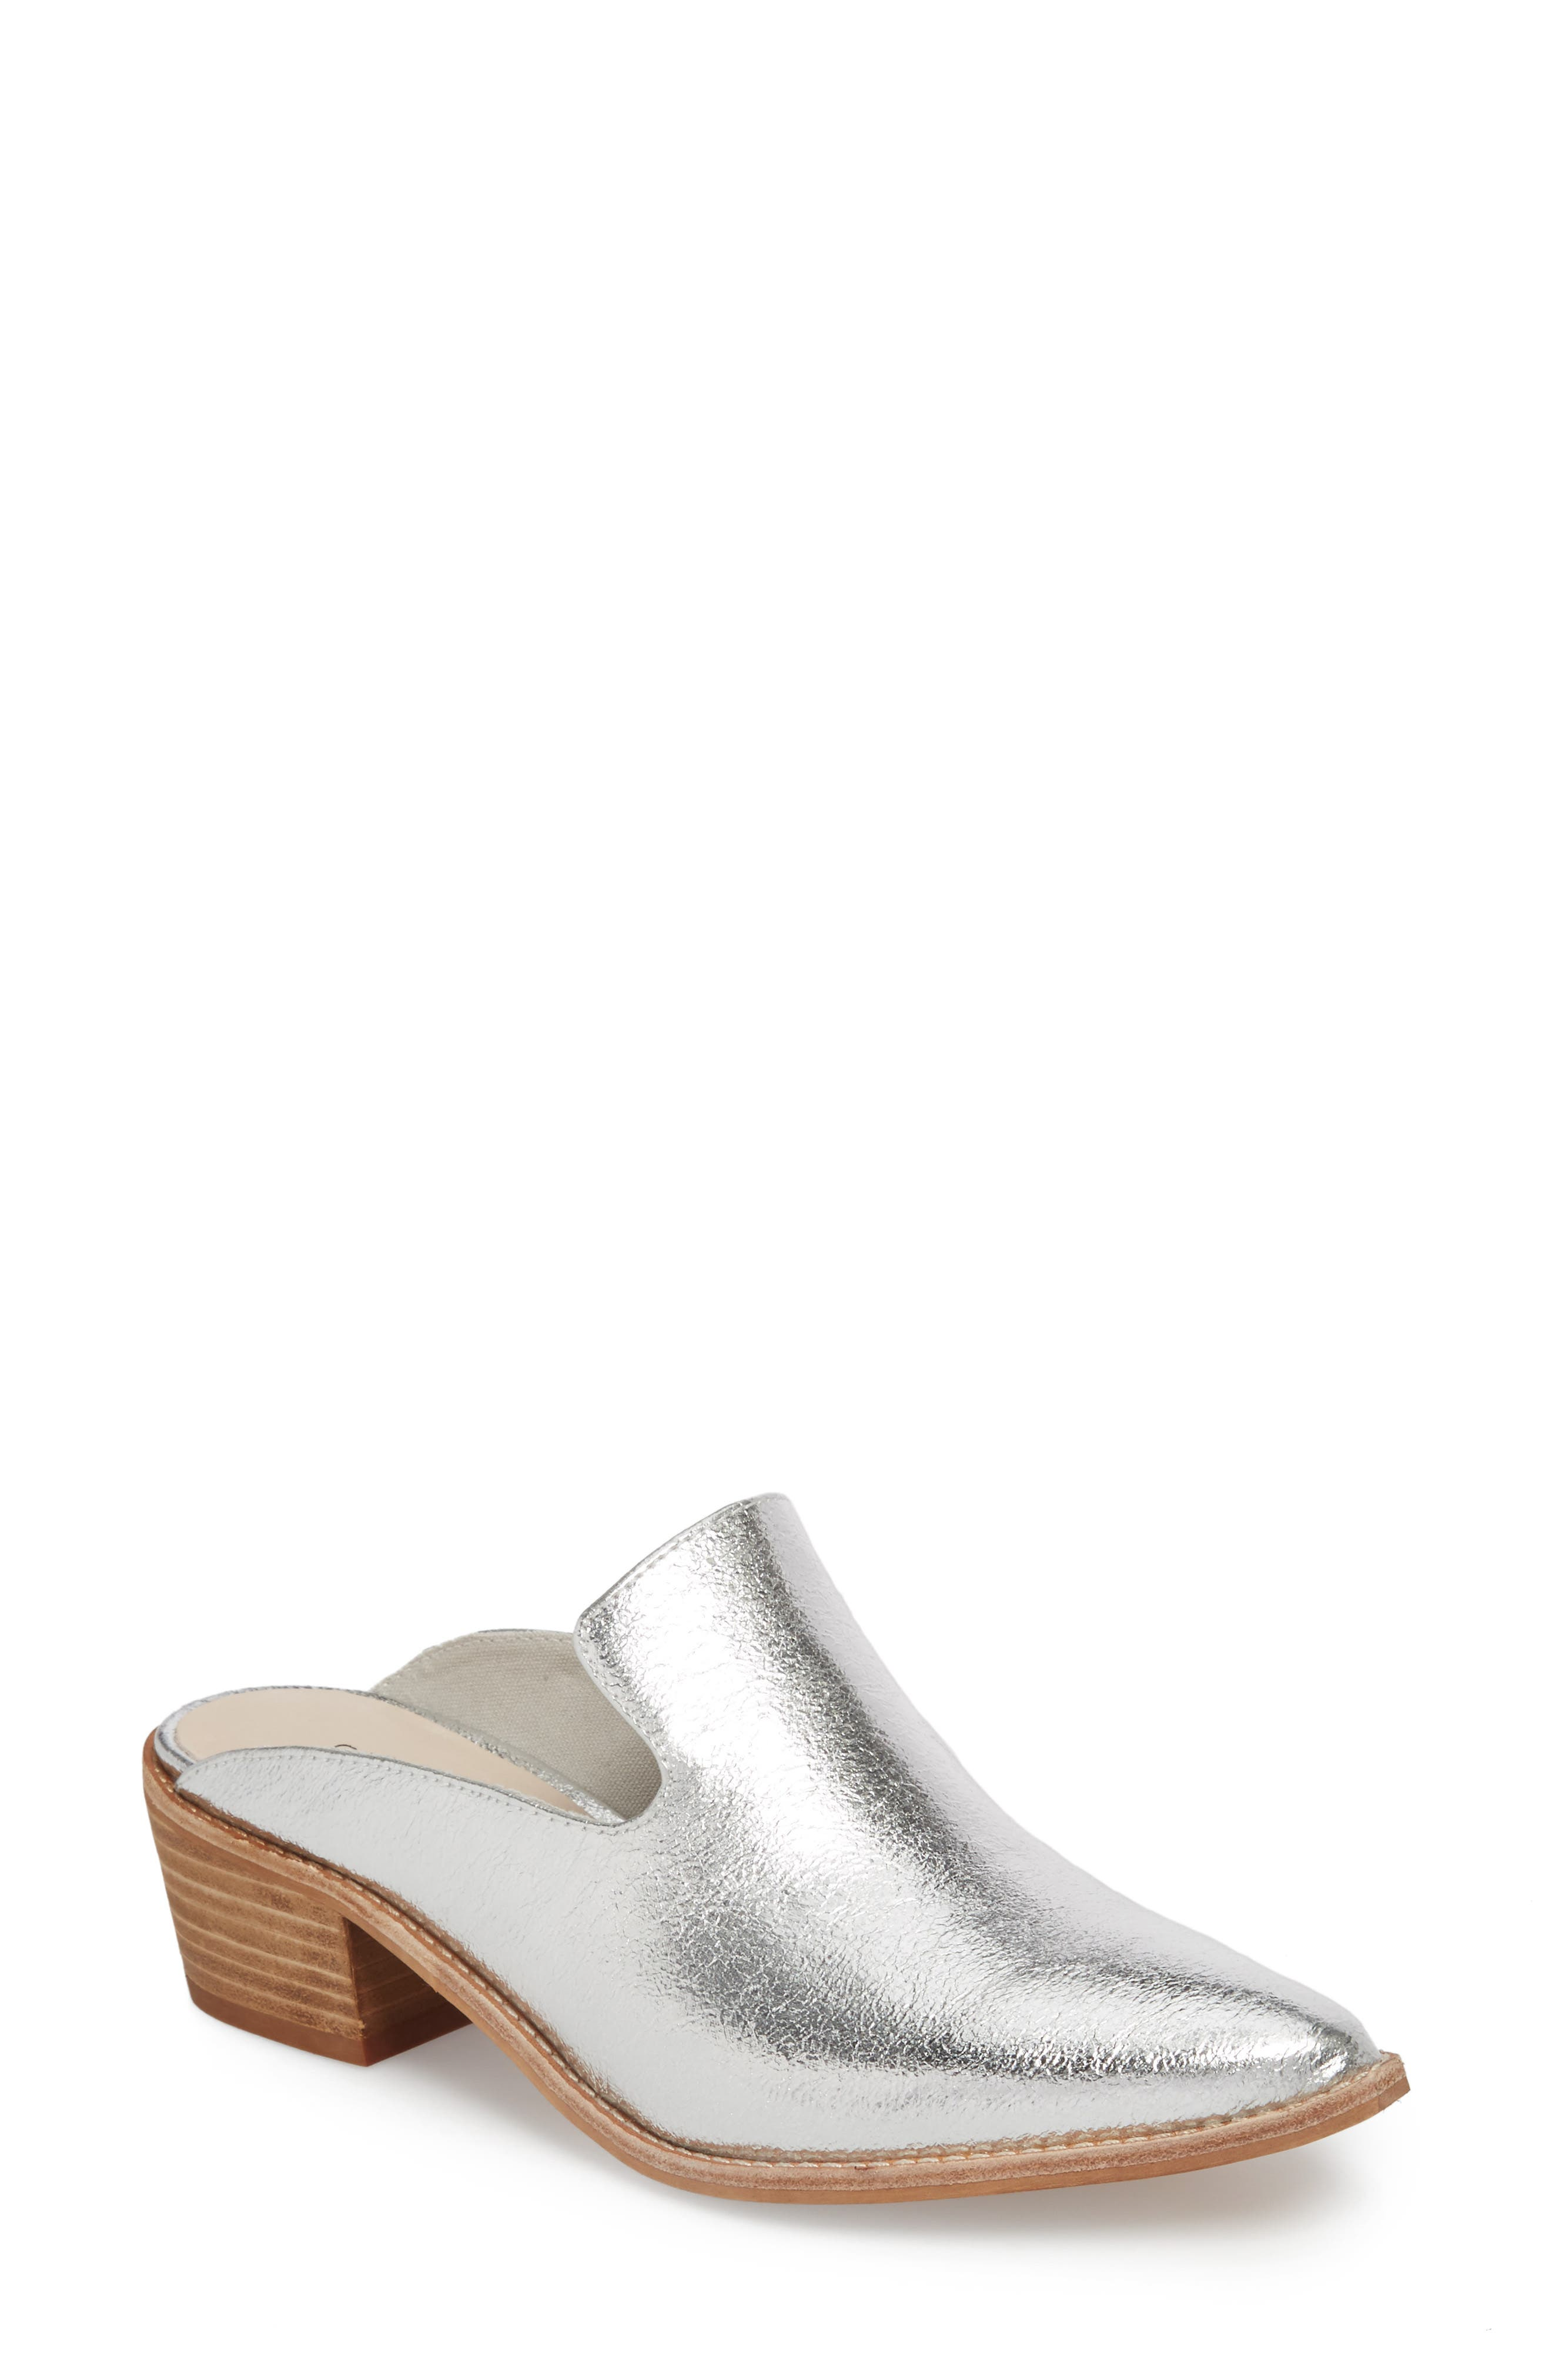 Marnie Loafer Mule,                             Main thumbnail 1, color,                             Silver